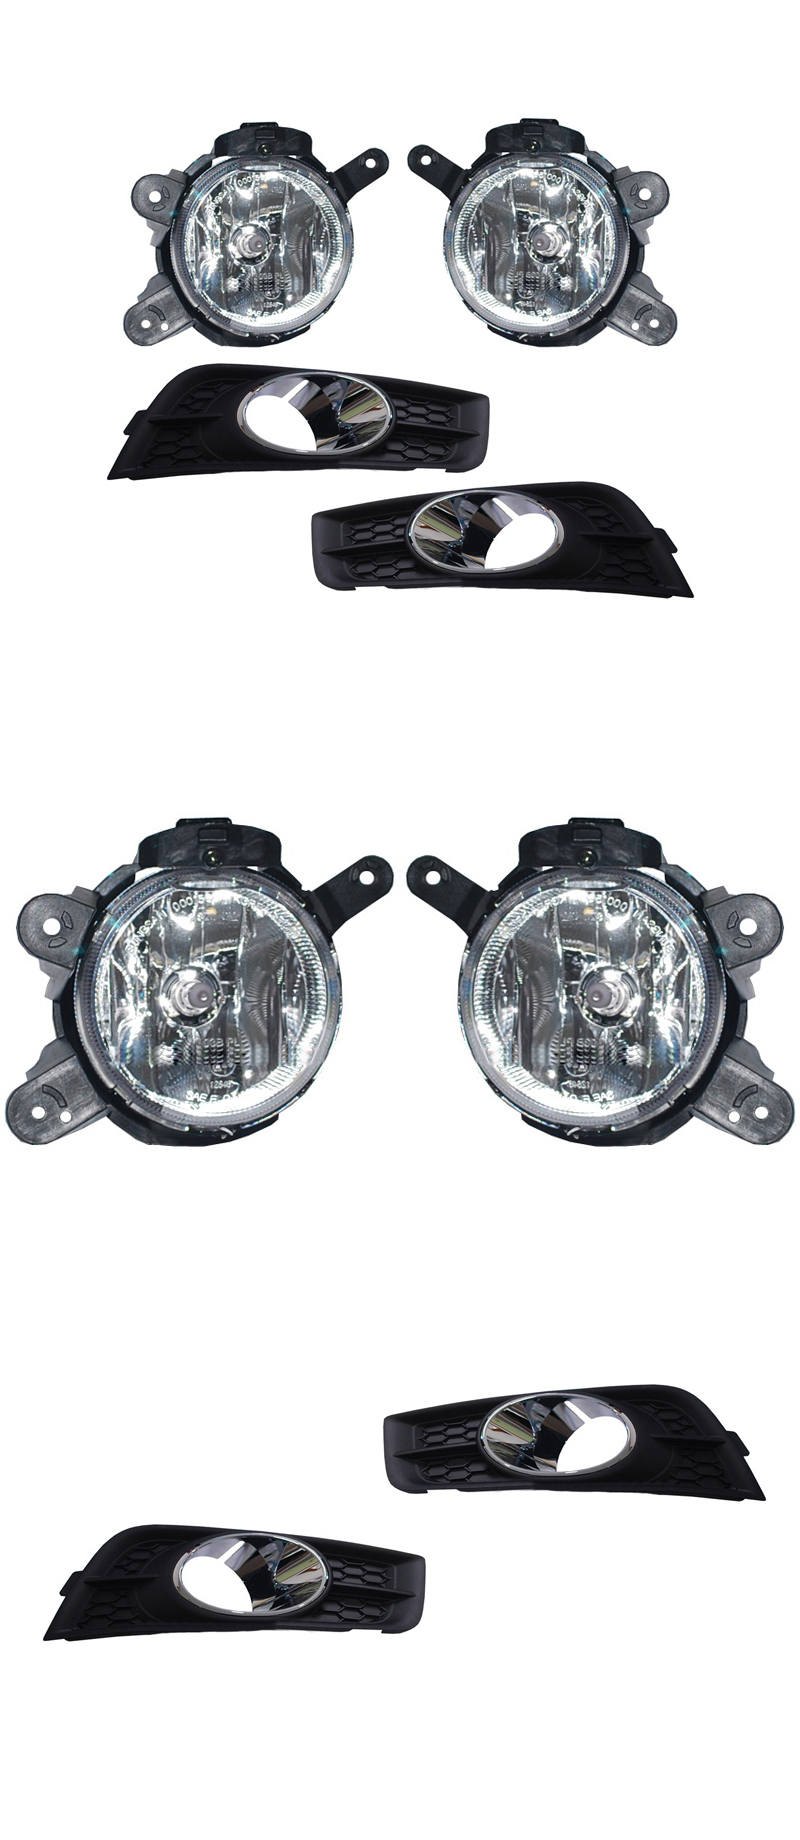 Genuine Fog Lamp Light & Cover Replacement Kit for